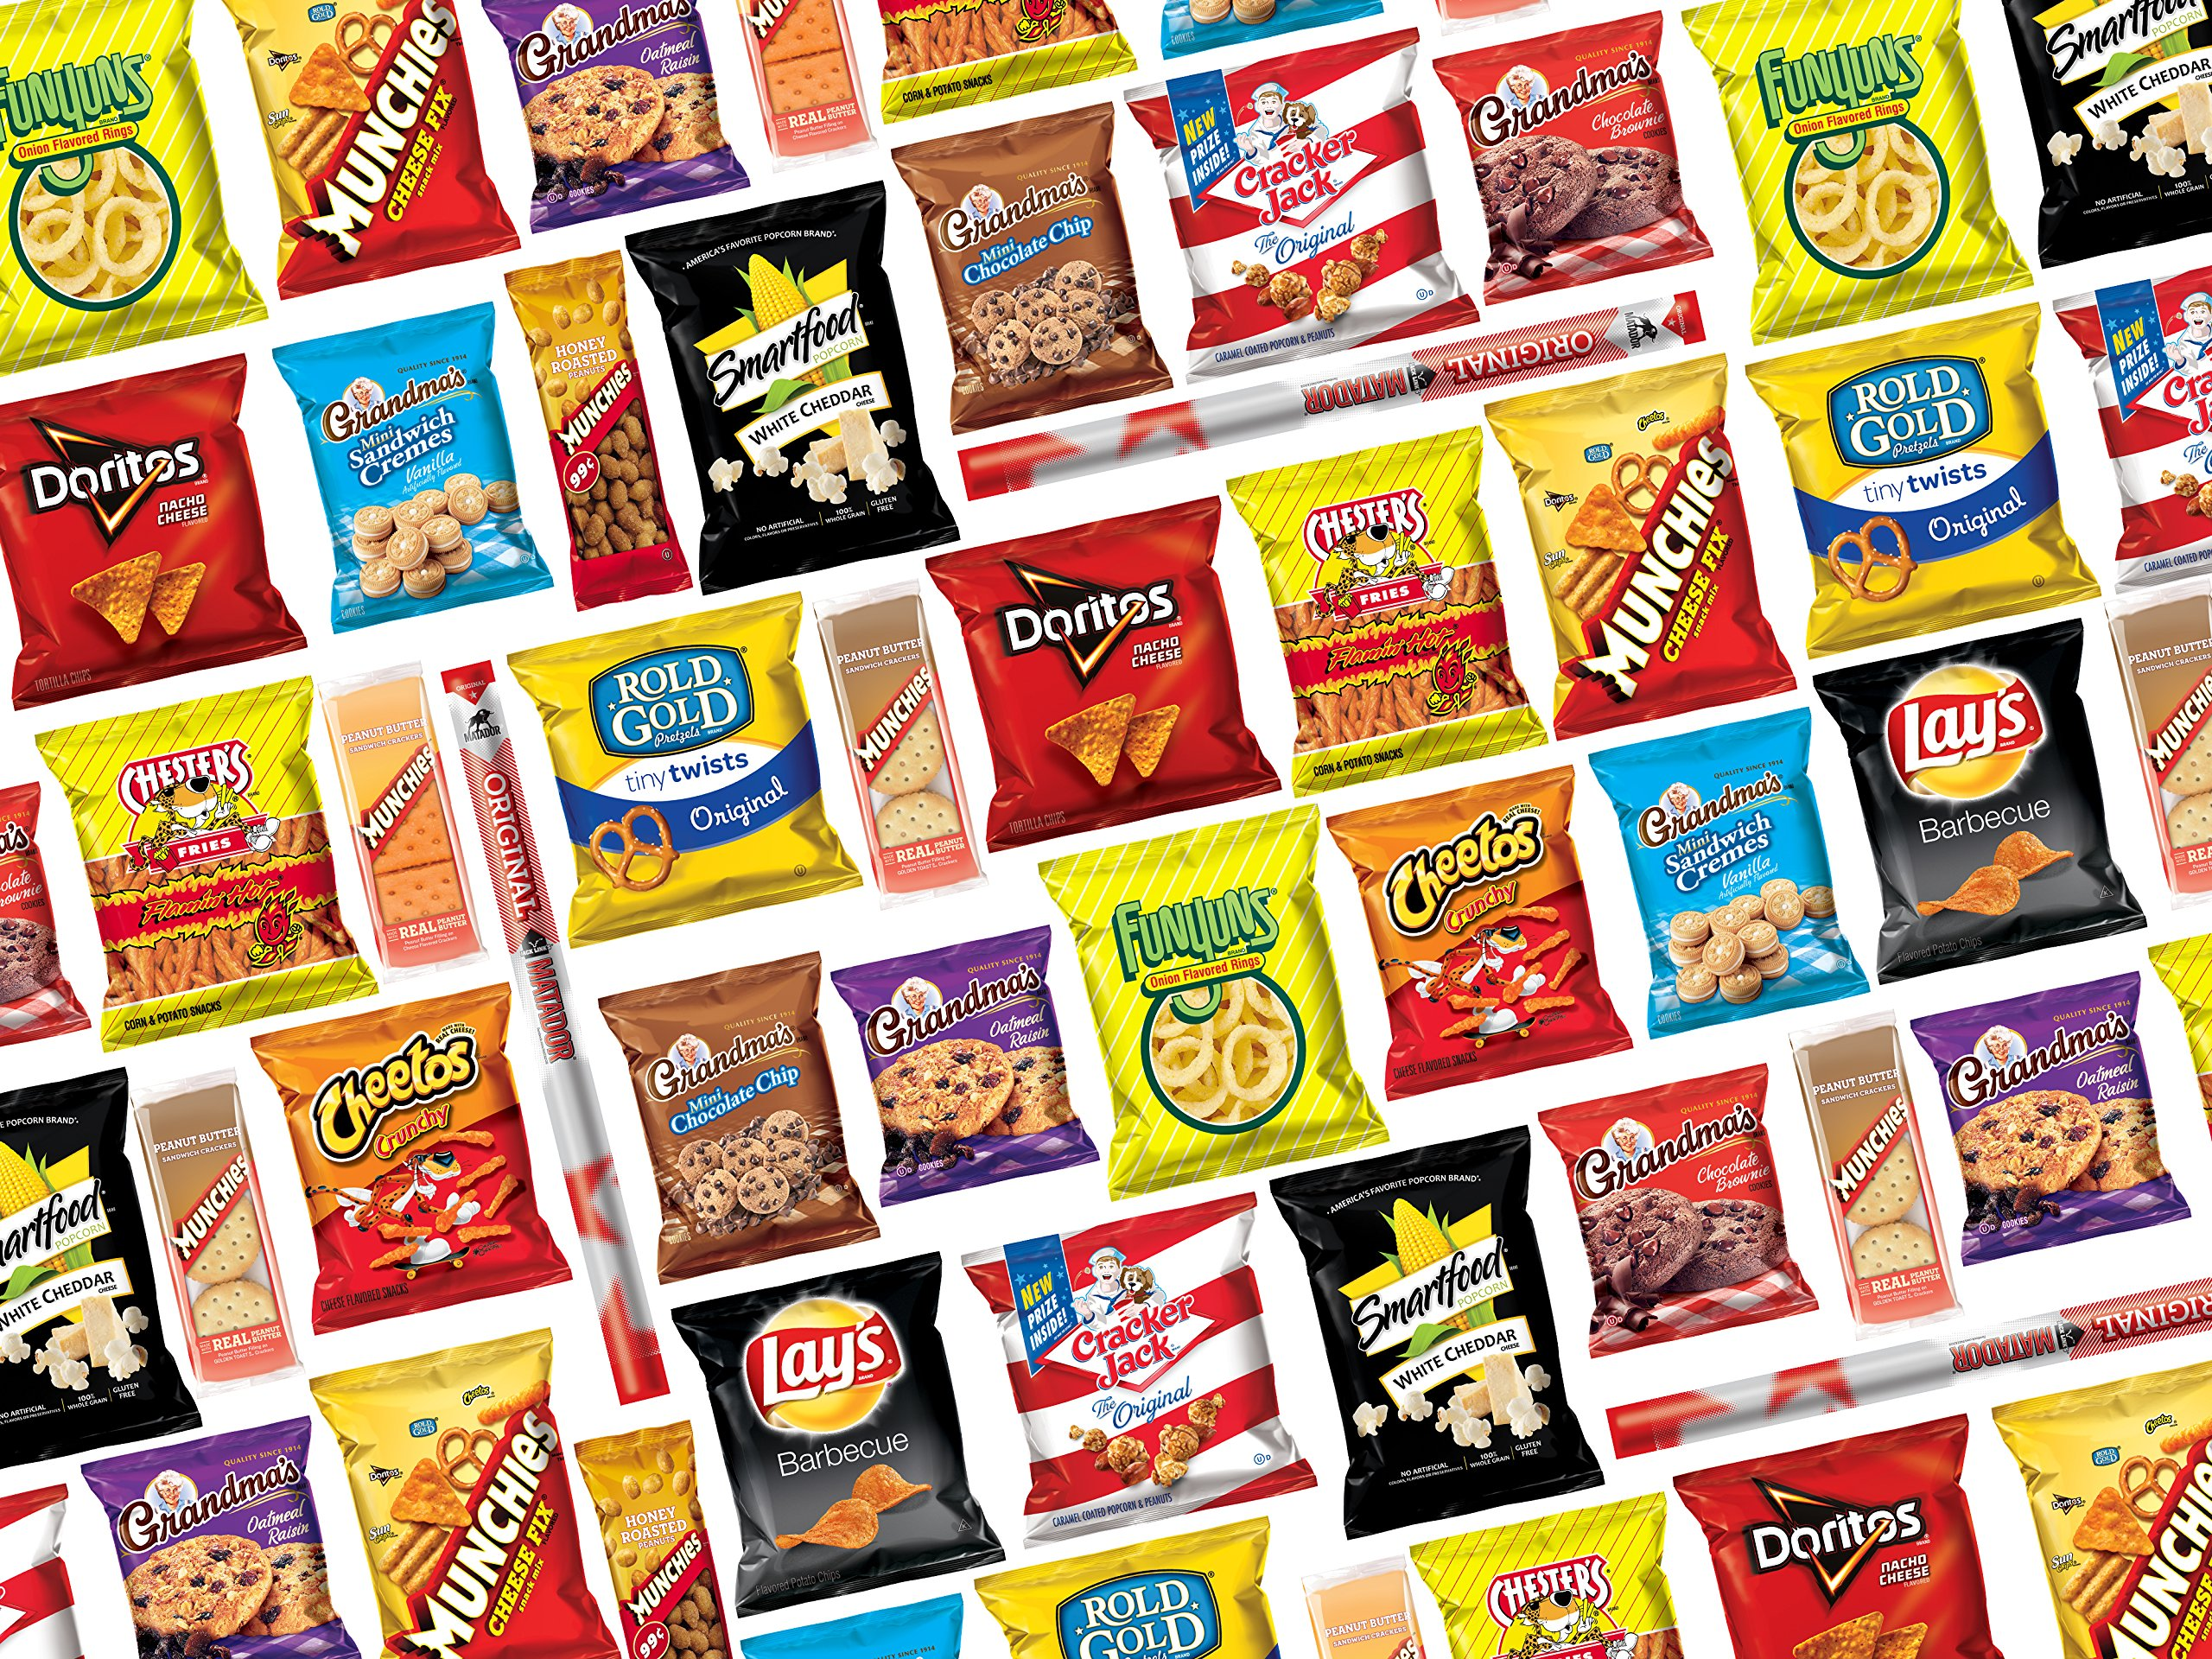 Ultimate Snack Care Package, Variety Assortment of Chips, Cookies, Crackers & More, 40 Count by Frito Lay (Image #2)